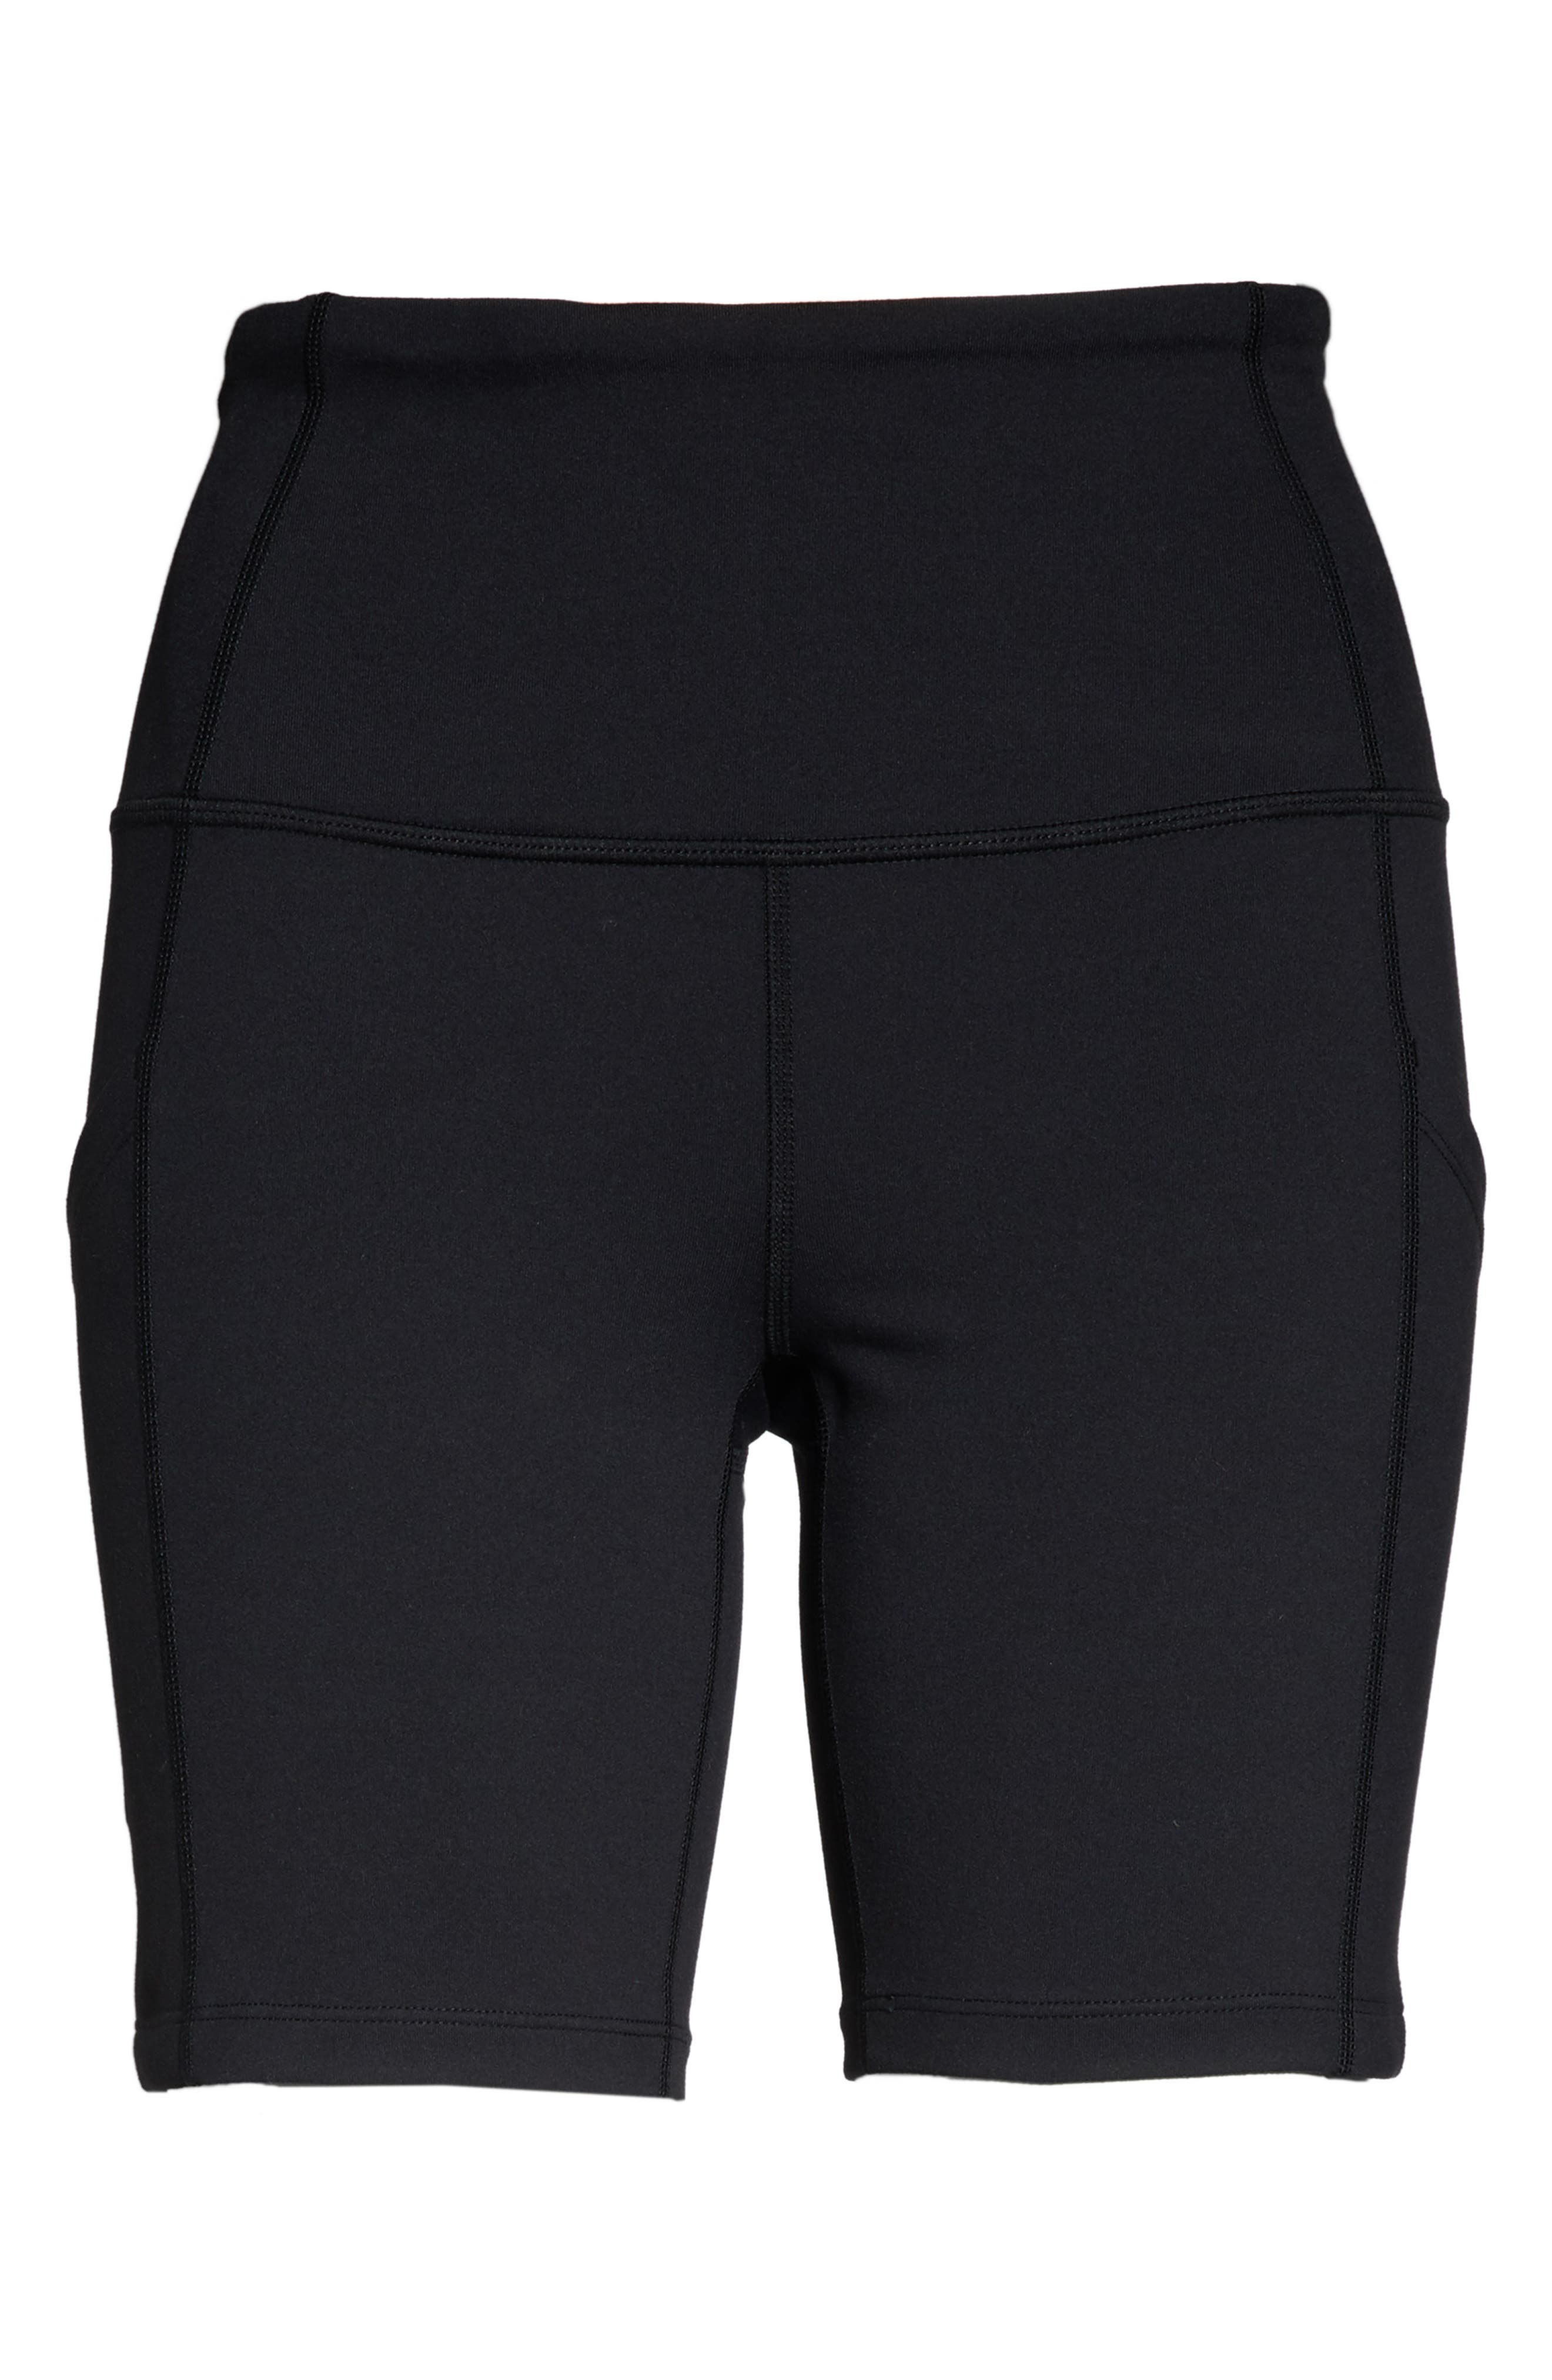 ZELLA, Live In High Waist Pocket Bike Shorts, Alternate thumbnail 7, color, BLACK